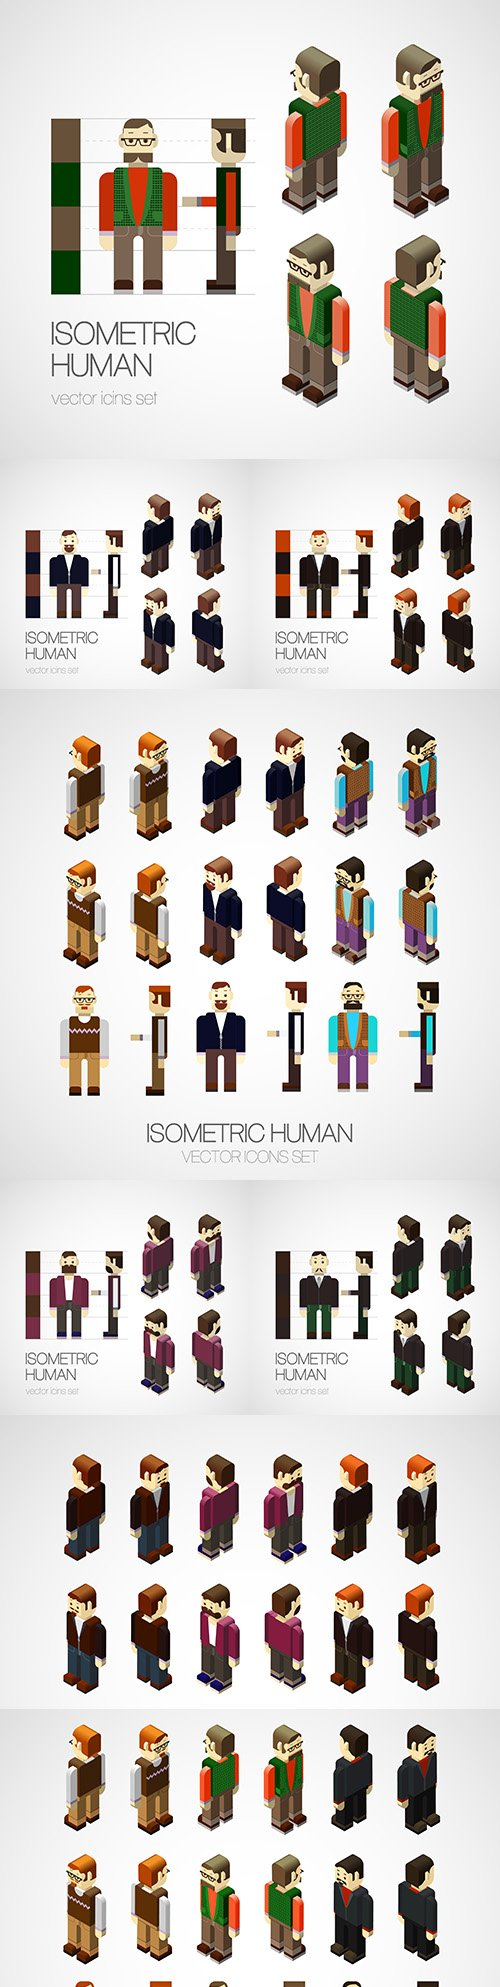 Business people in a strict suit isometric set